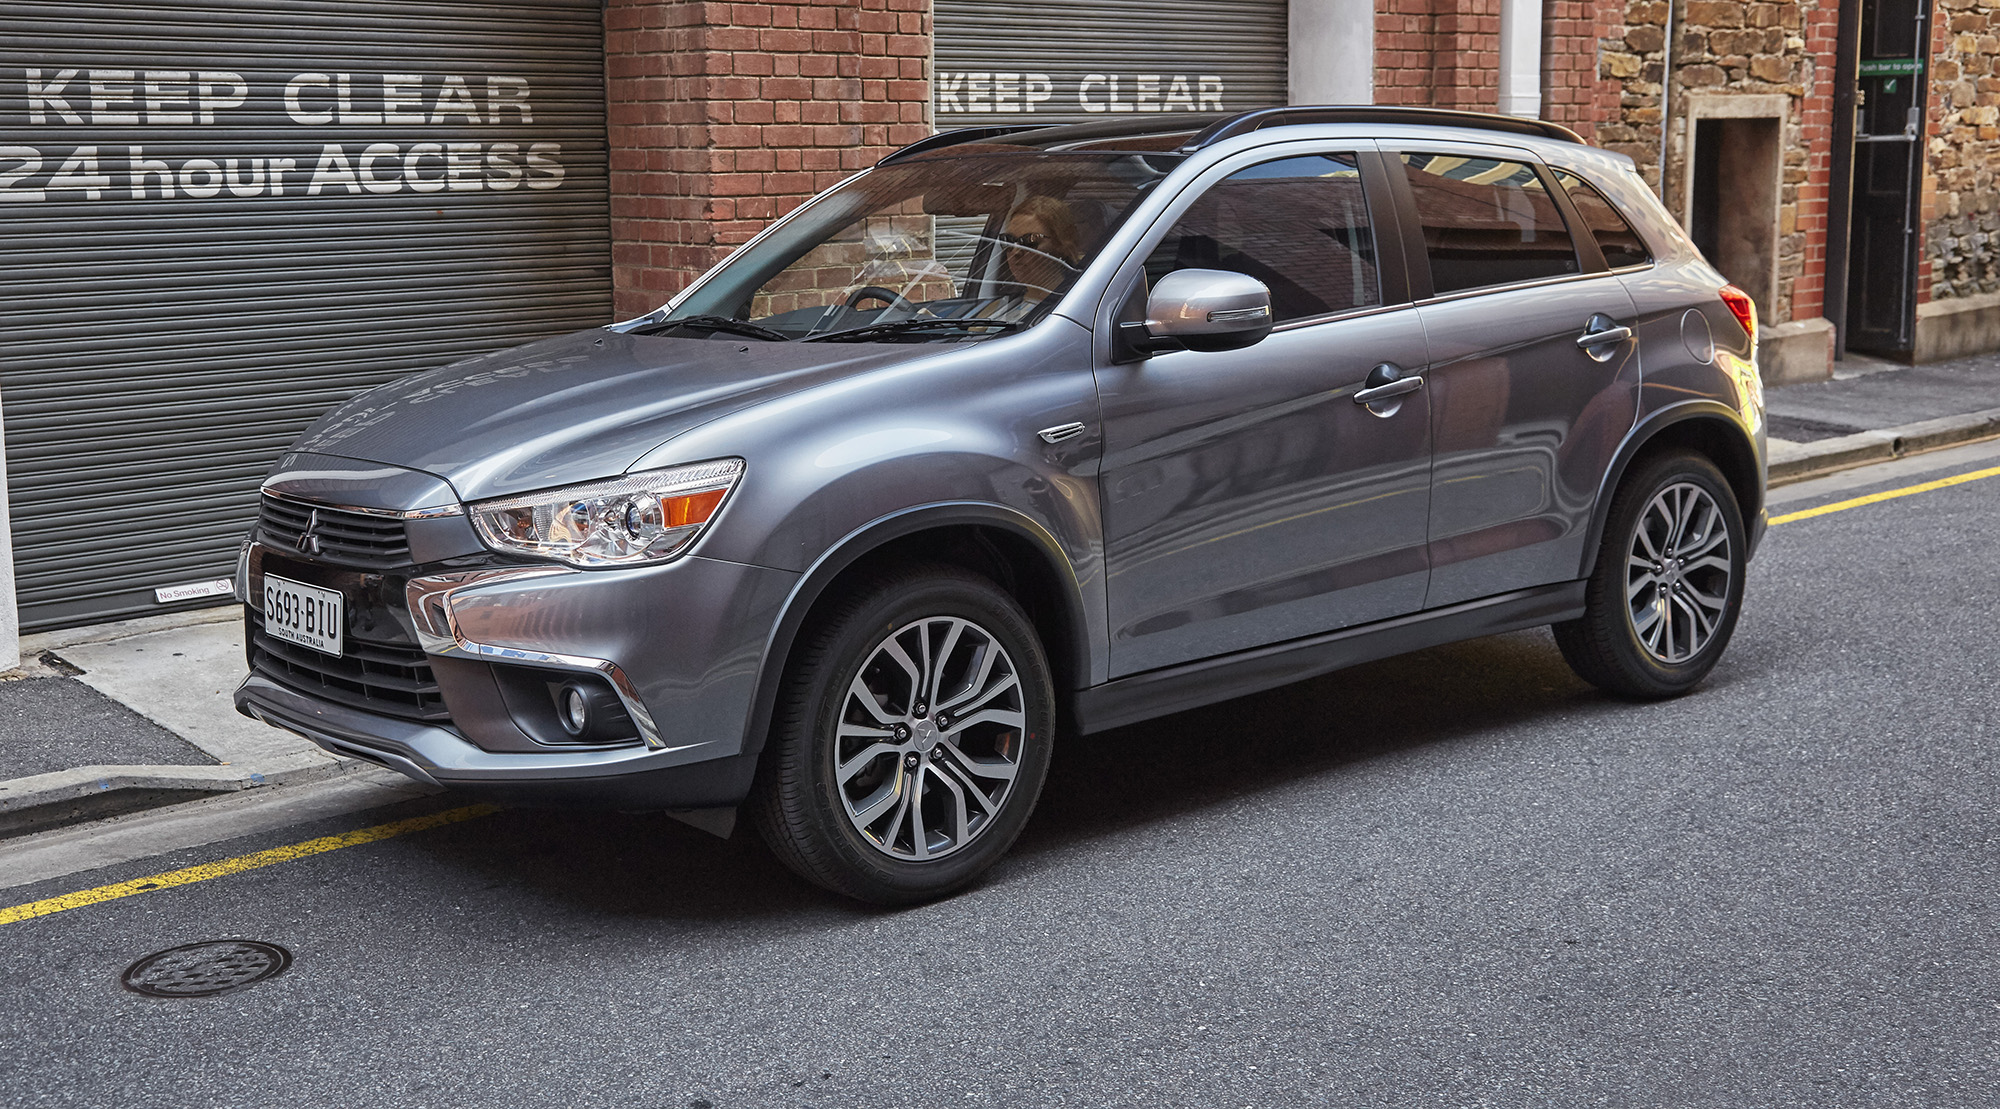 2017 mitsubishi asx pricing and specs styling and kit update touches down photos 1 of 6. Black Bedroom Furniture Sets. Home Design Ideas